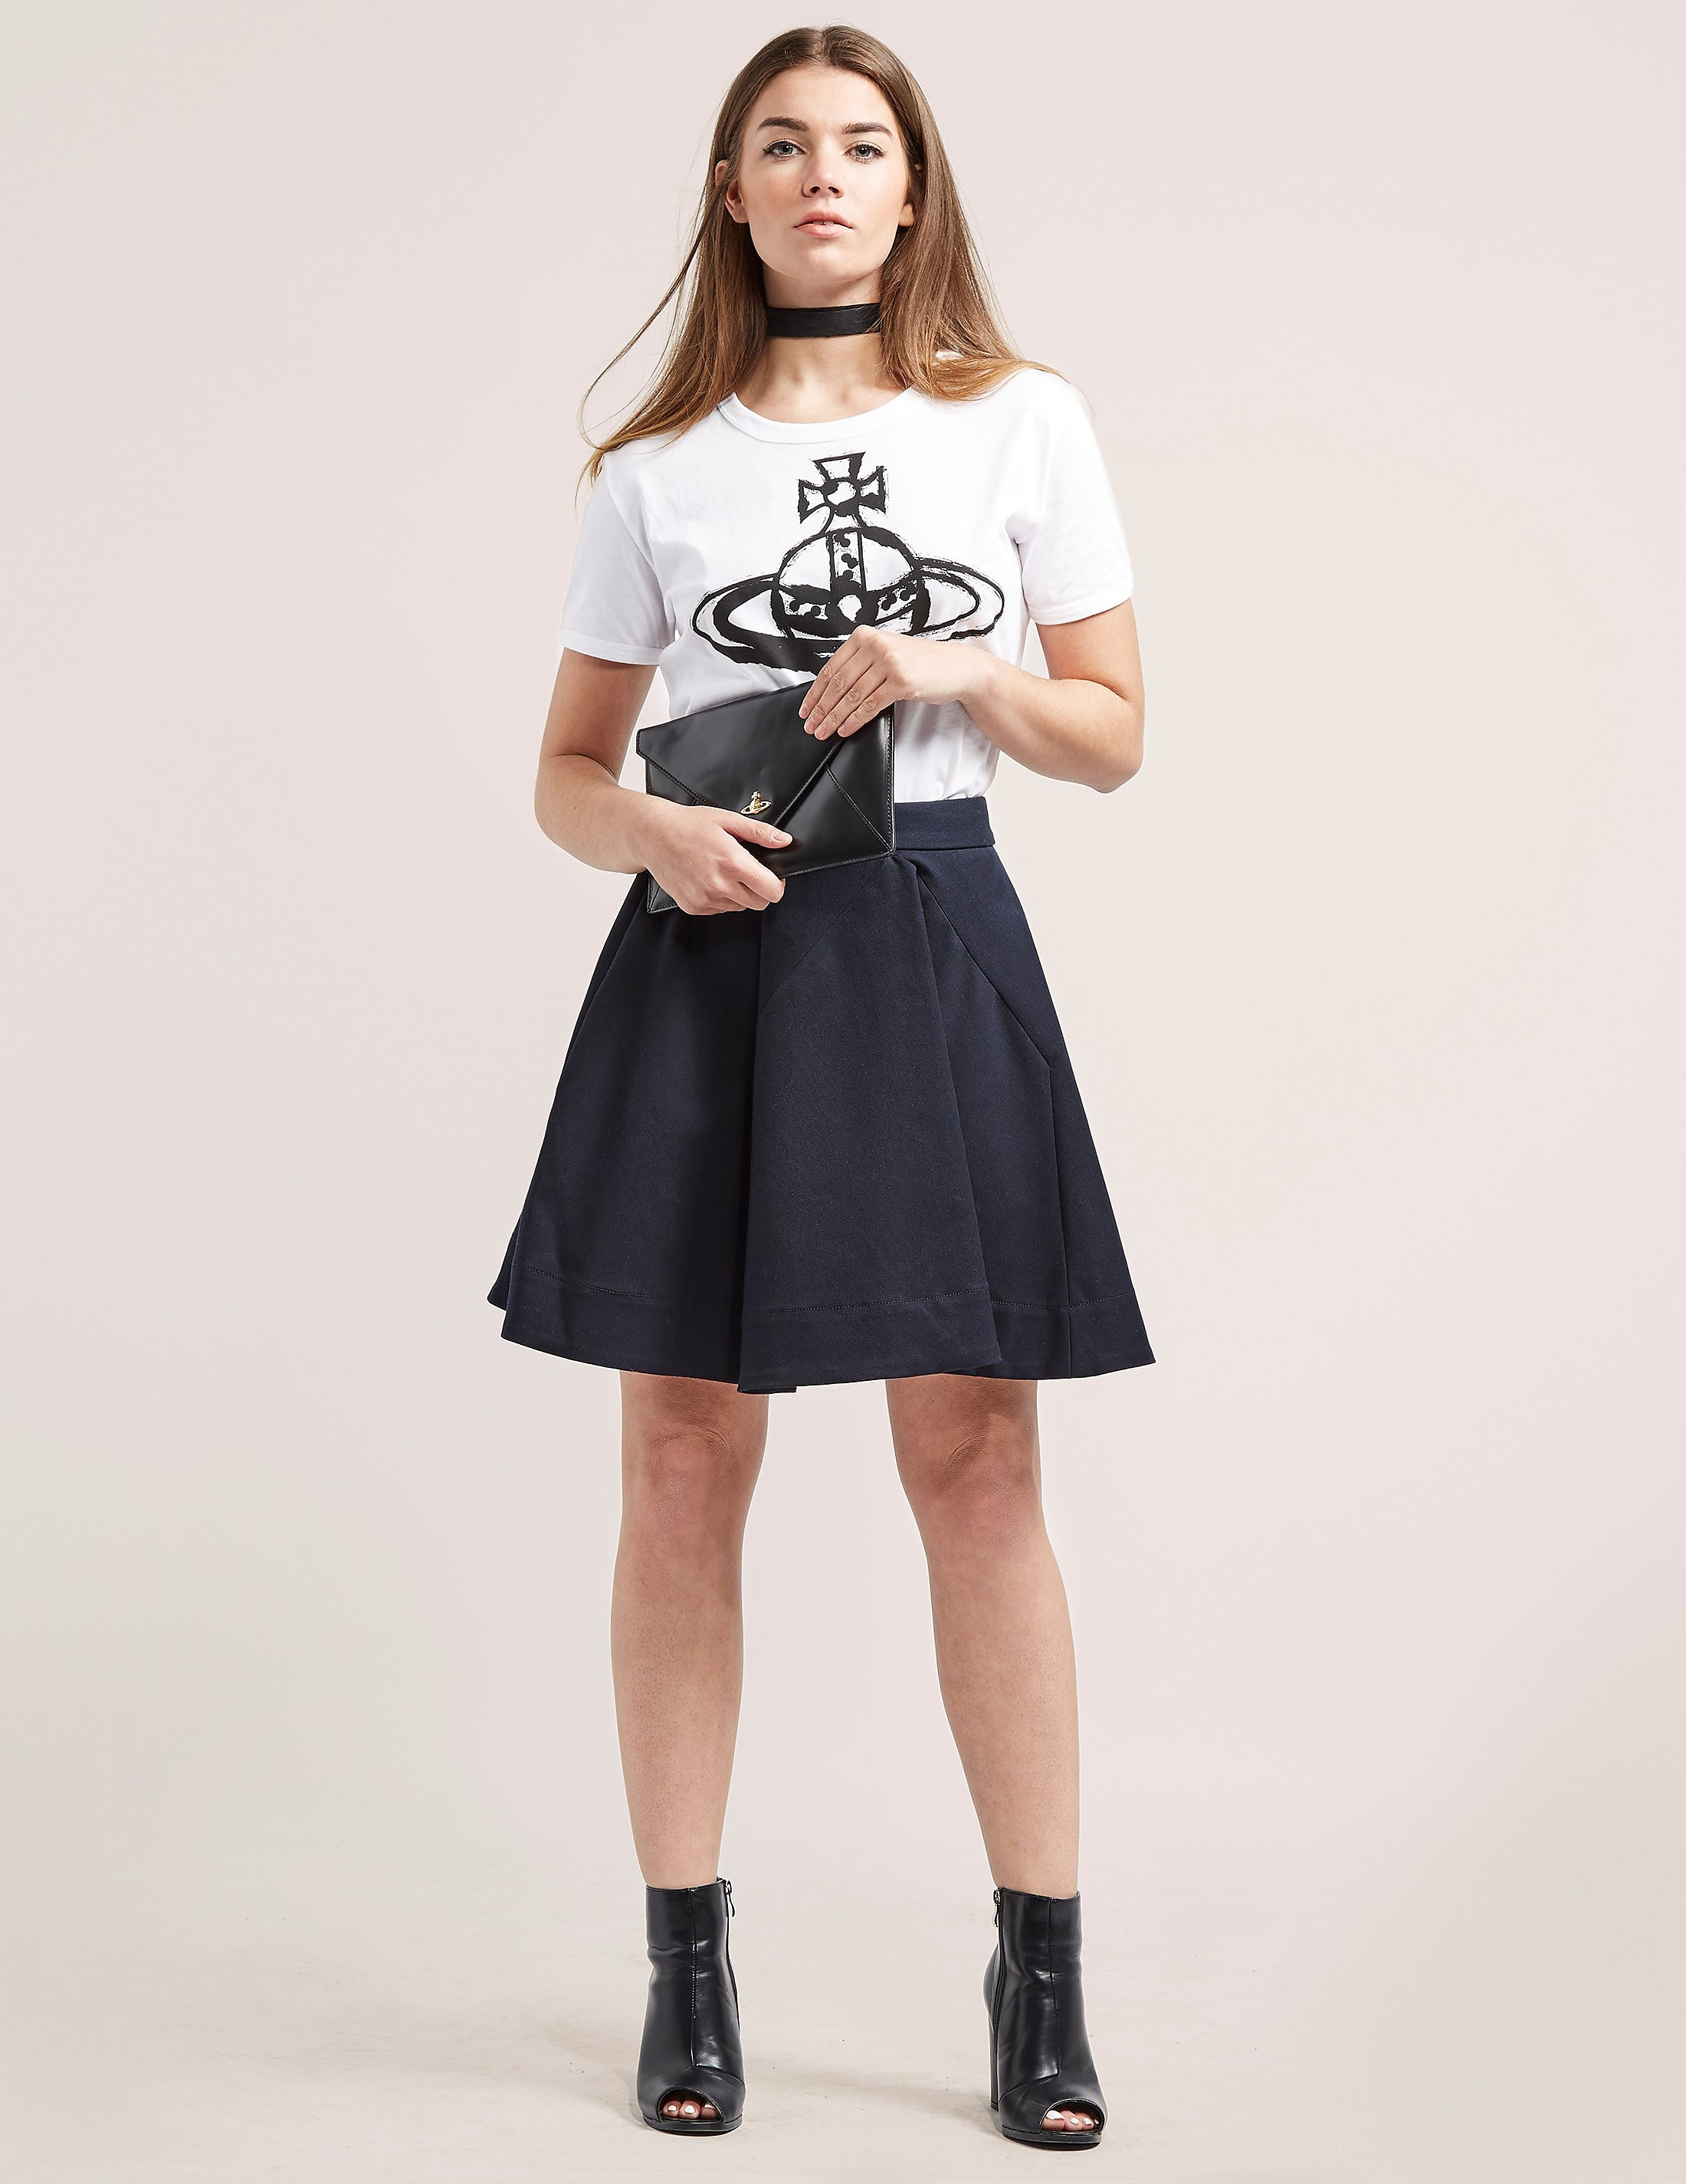 Vivienne Westwood New Legend Skirt